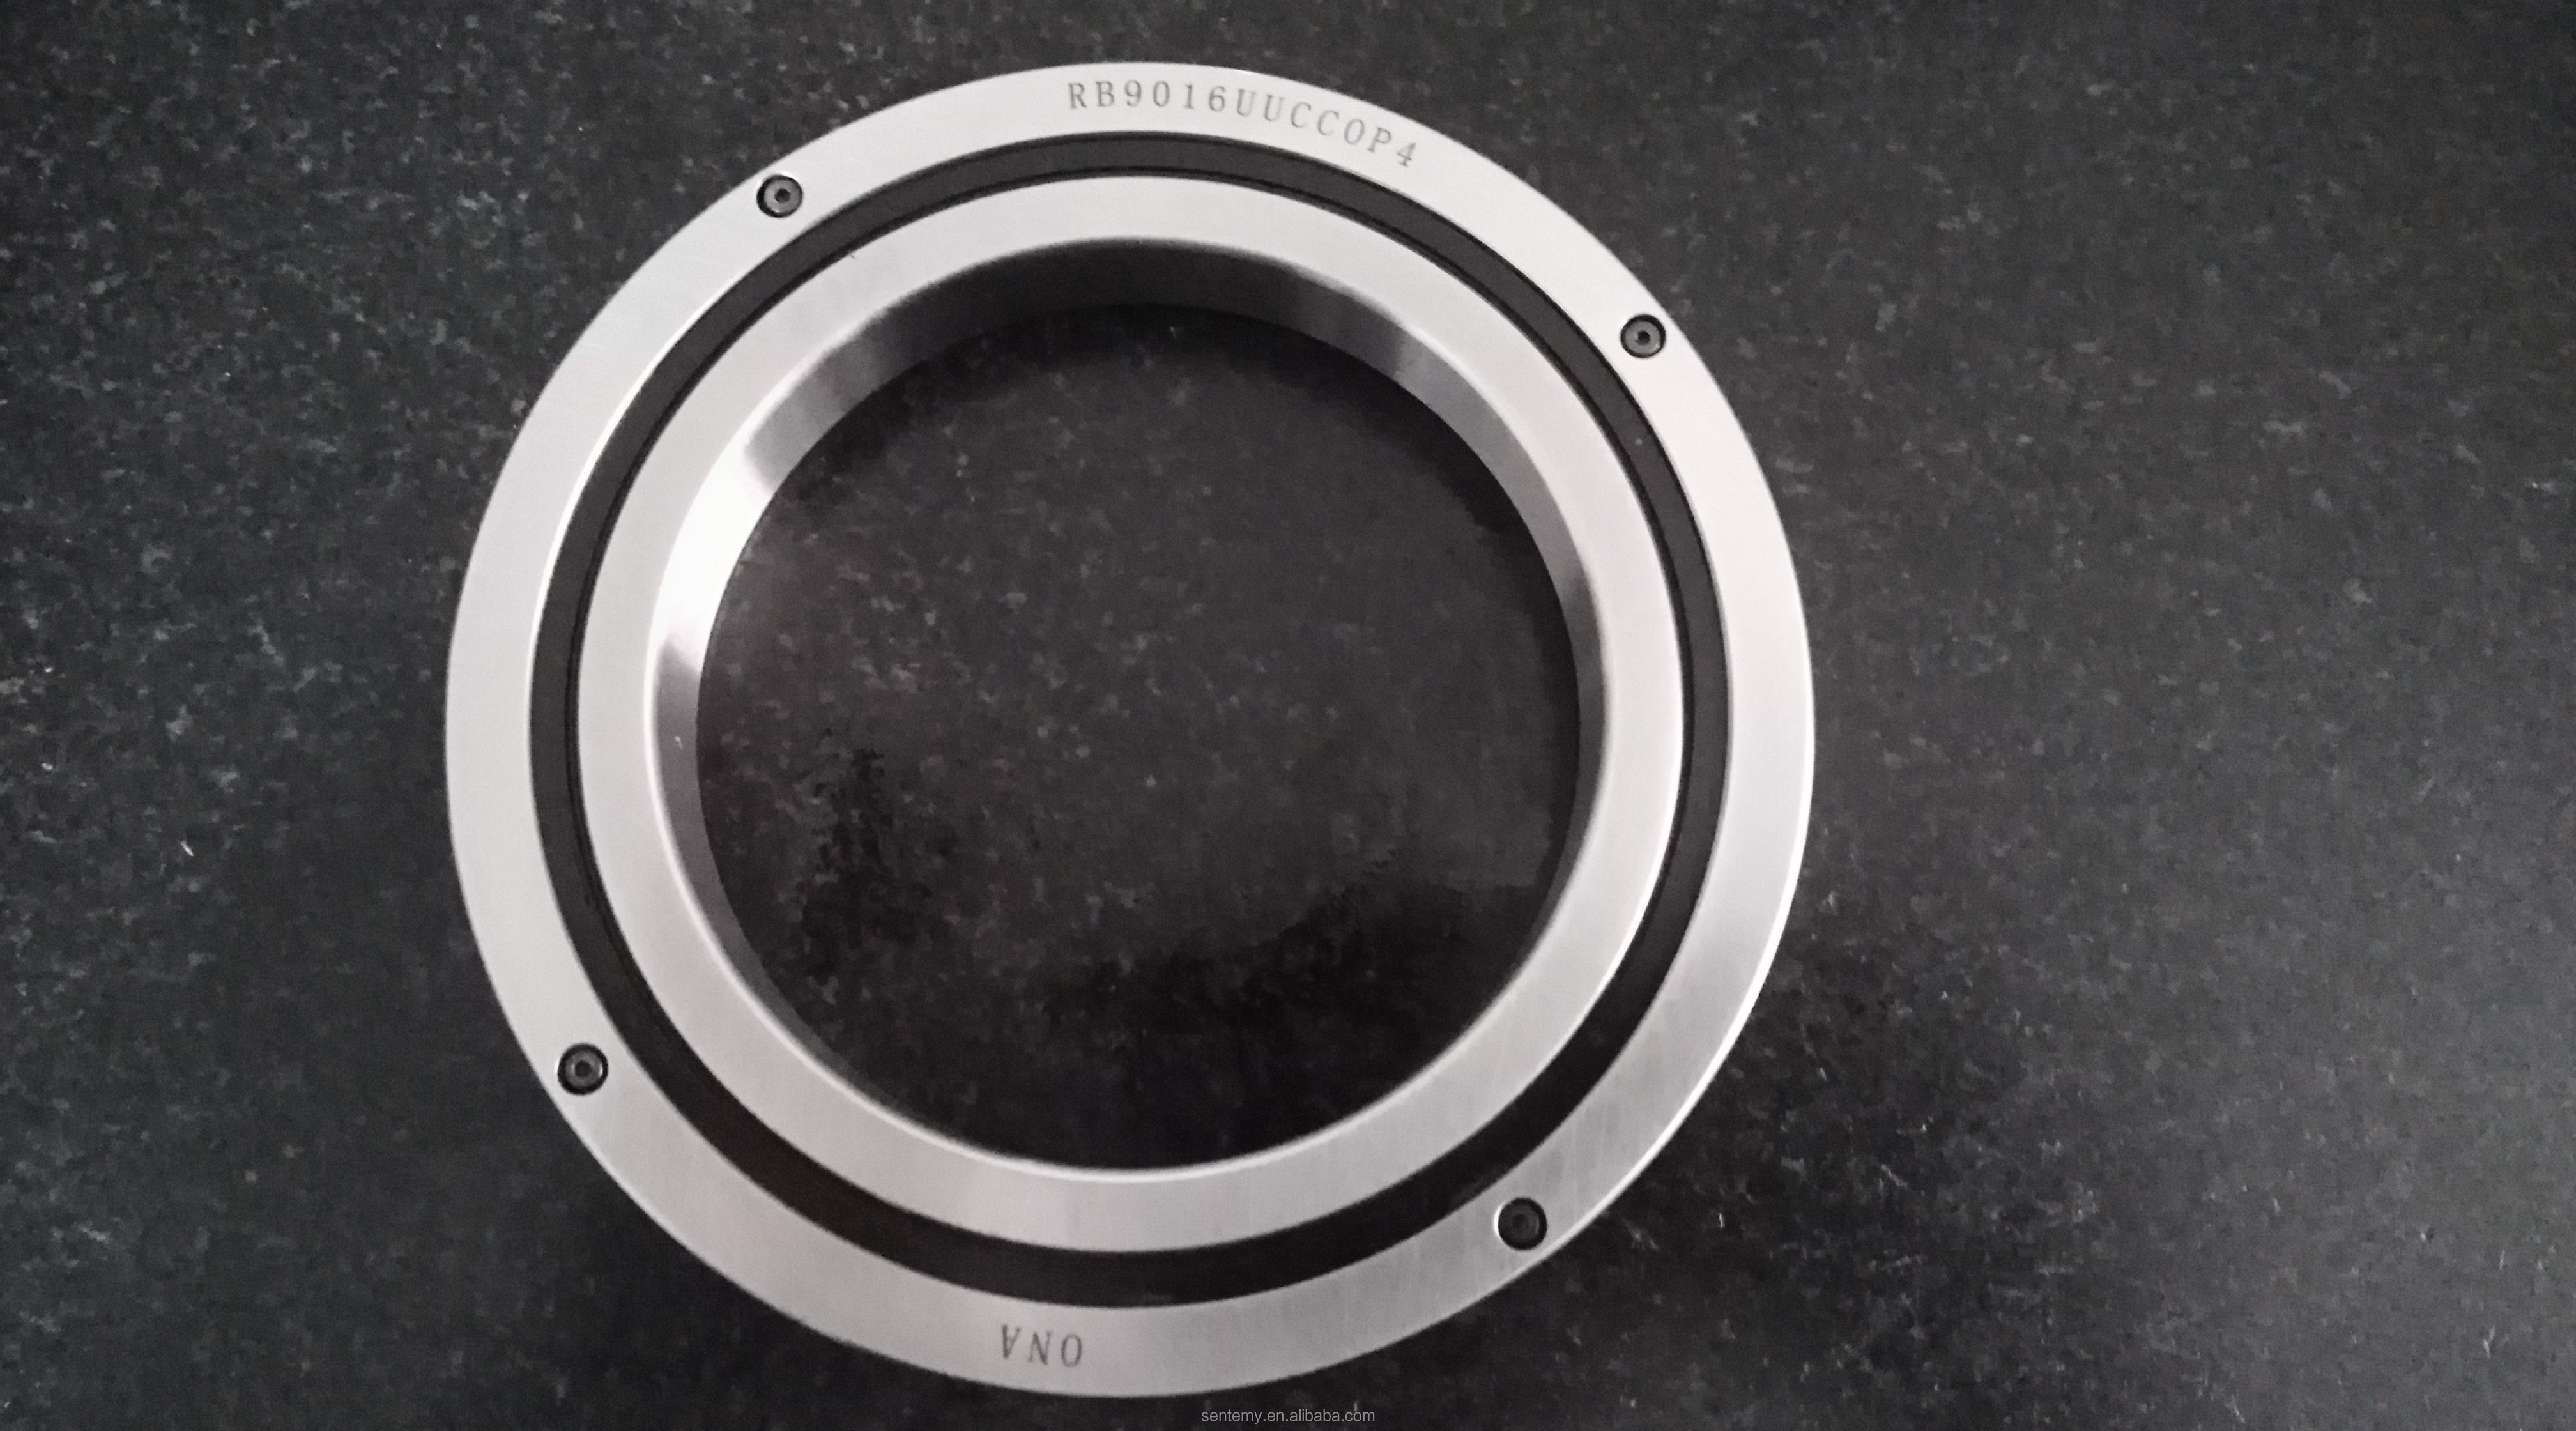 RB1000110UUCC0P5 1000*1250*110mm crossed roller bearing